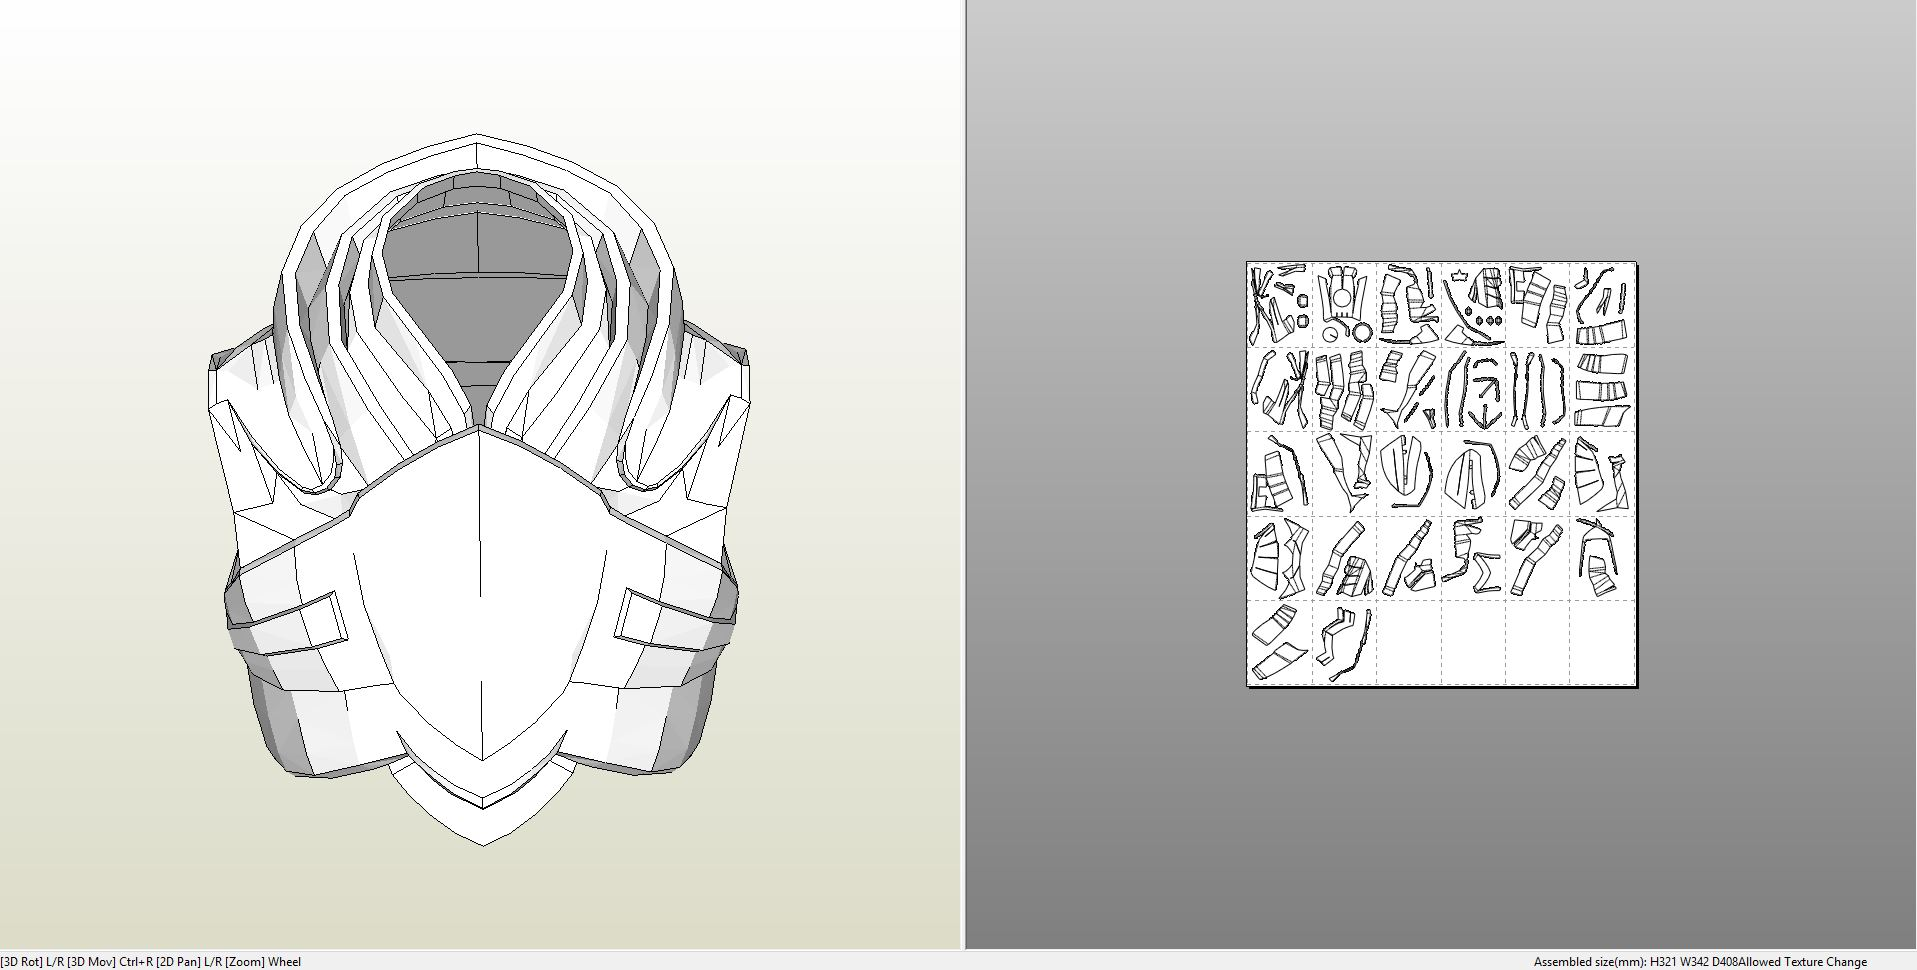 Papercraft Pdo File Template For Mass Effect Blood Dragon Armor Chest See more ideas about art, armor, fantasy art. papercraft pdo file template for mass